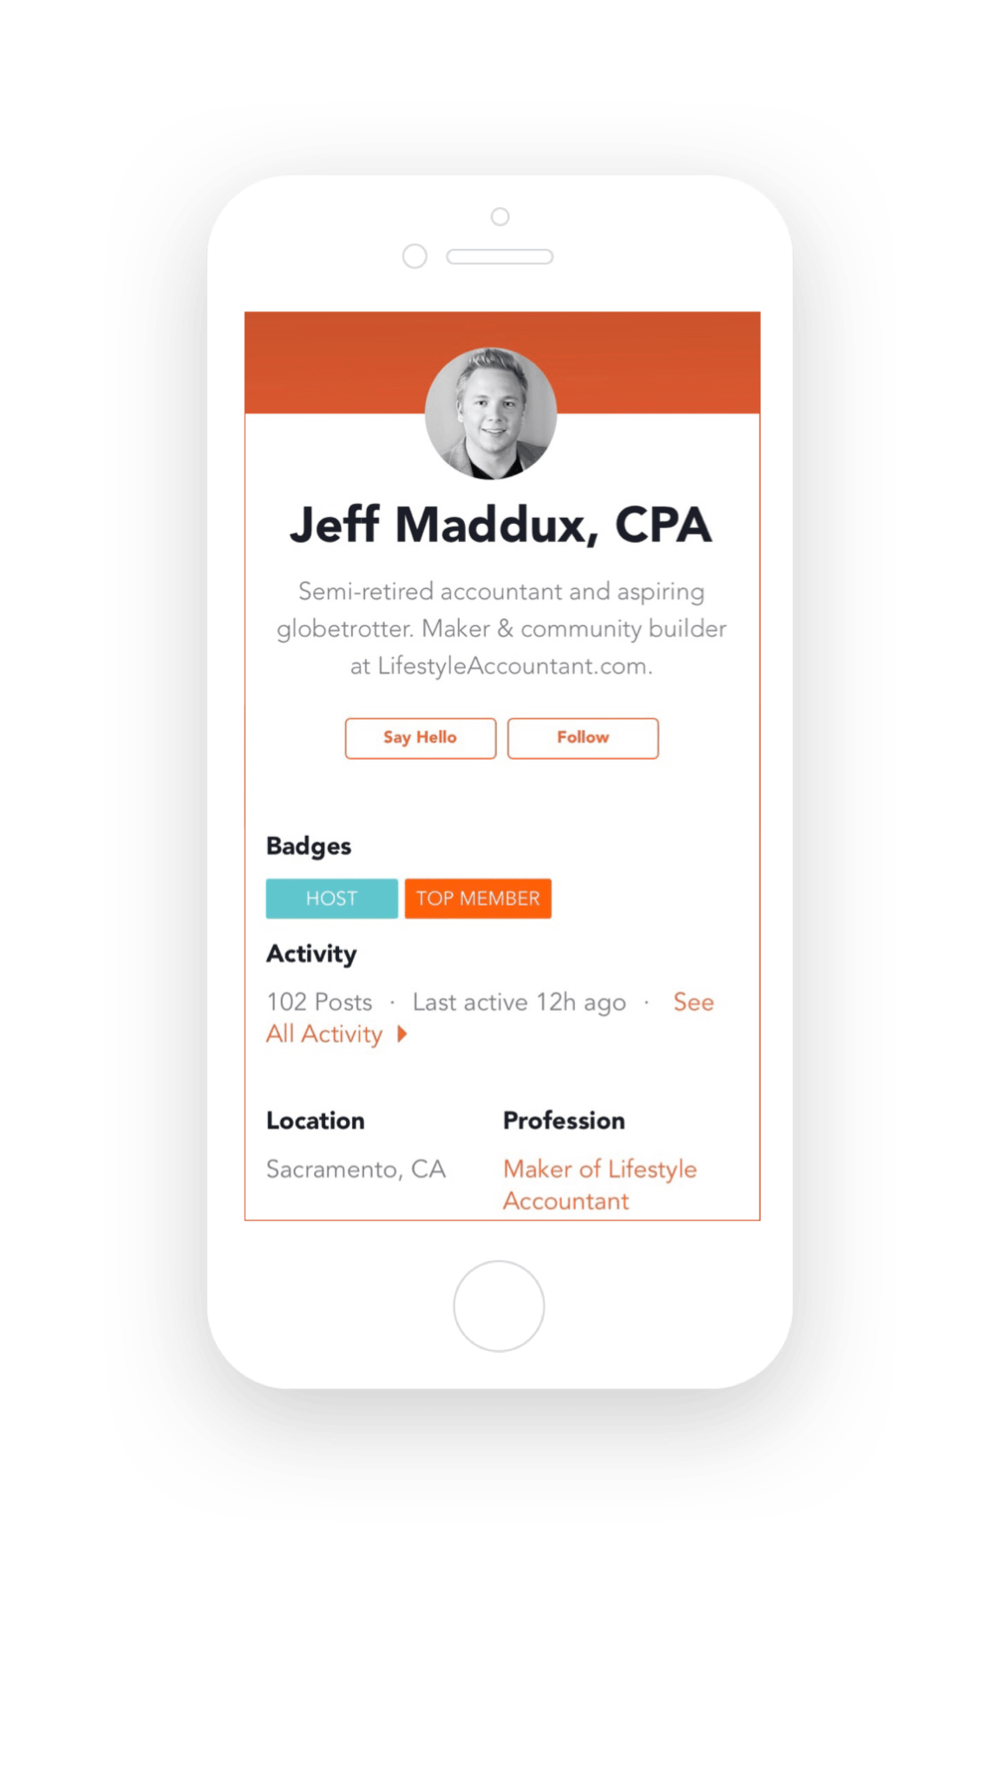 Lifestyle Accountant app - Jeff Maddux CPA2.png